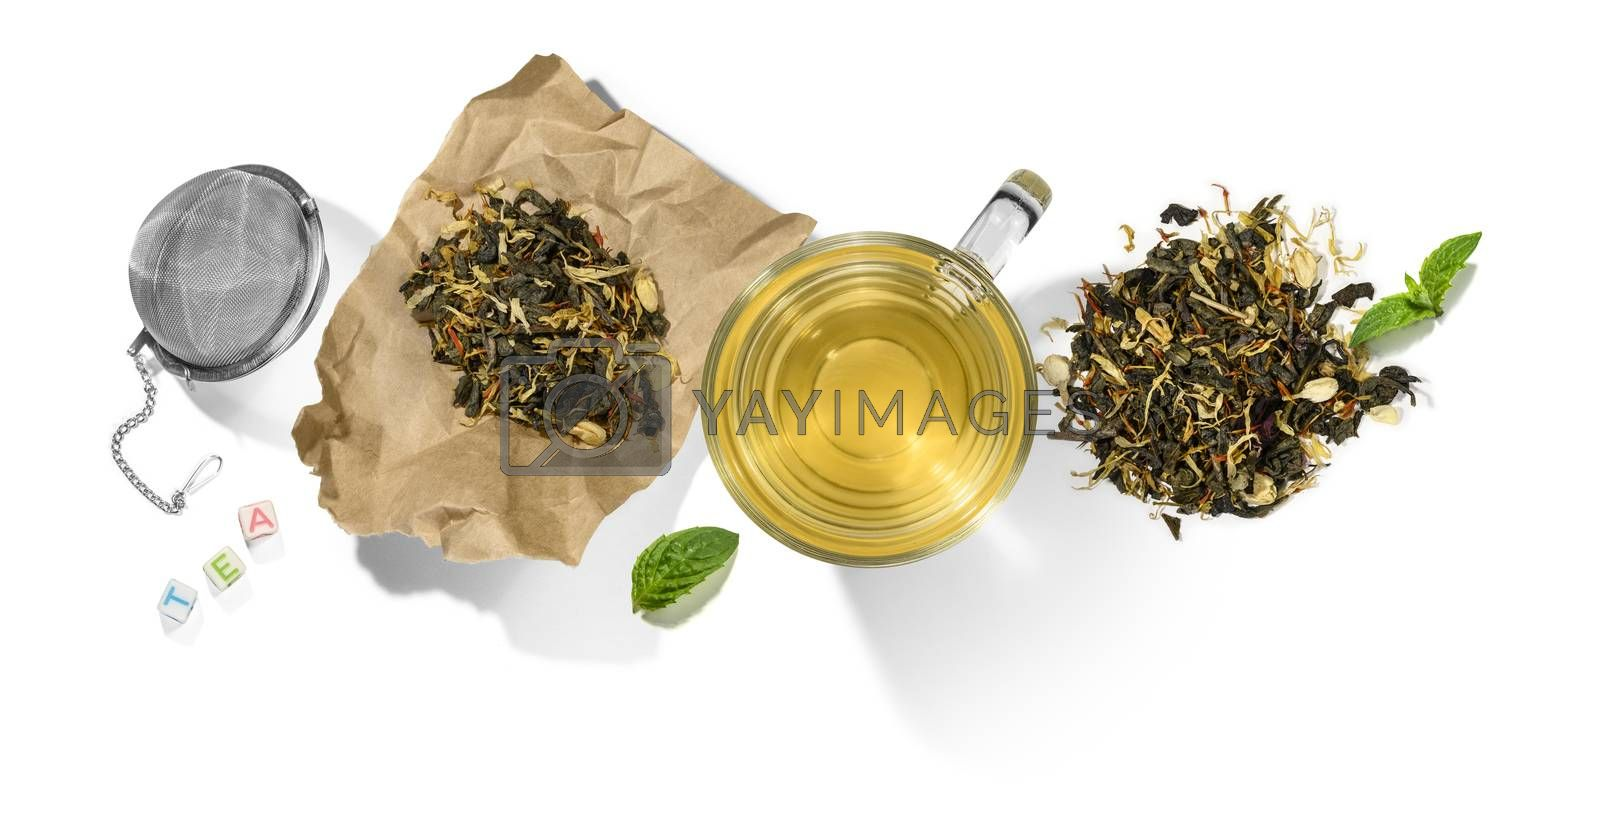 Green tea with aromatic additives and accessories. Top view on white background.